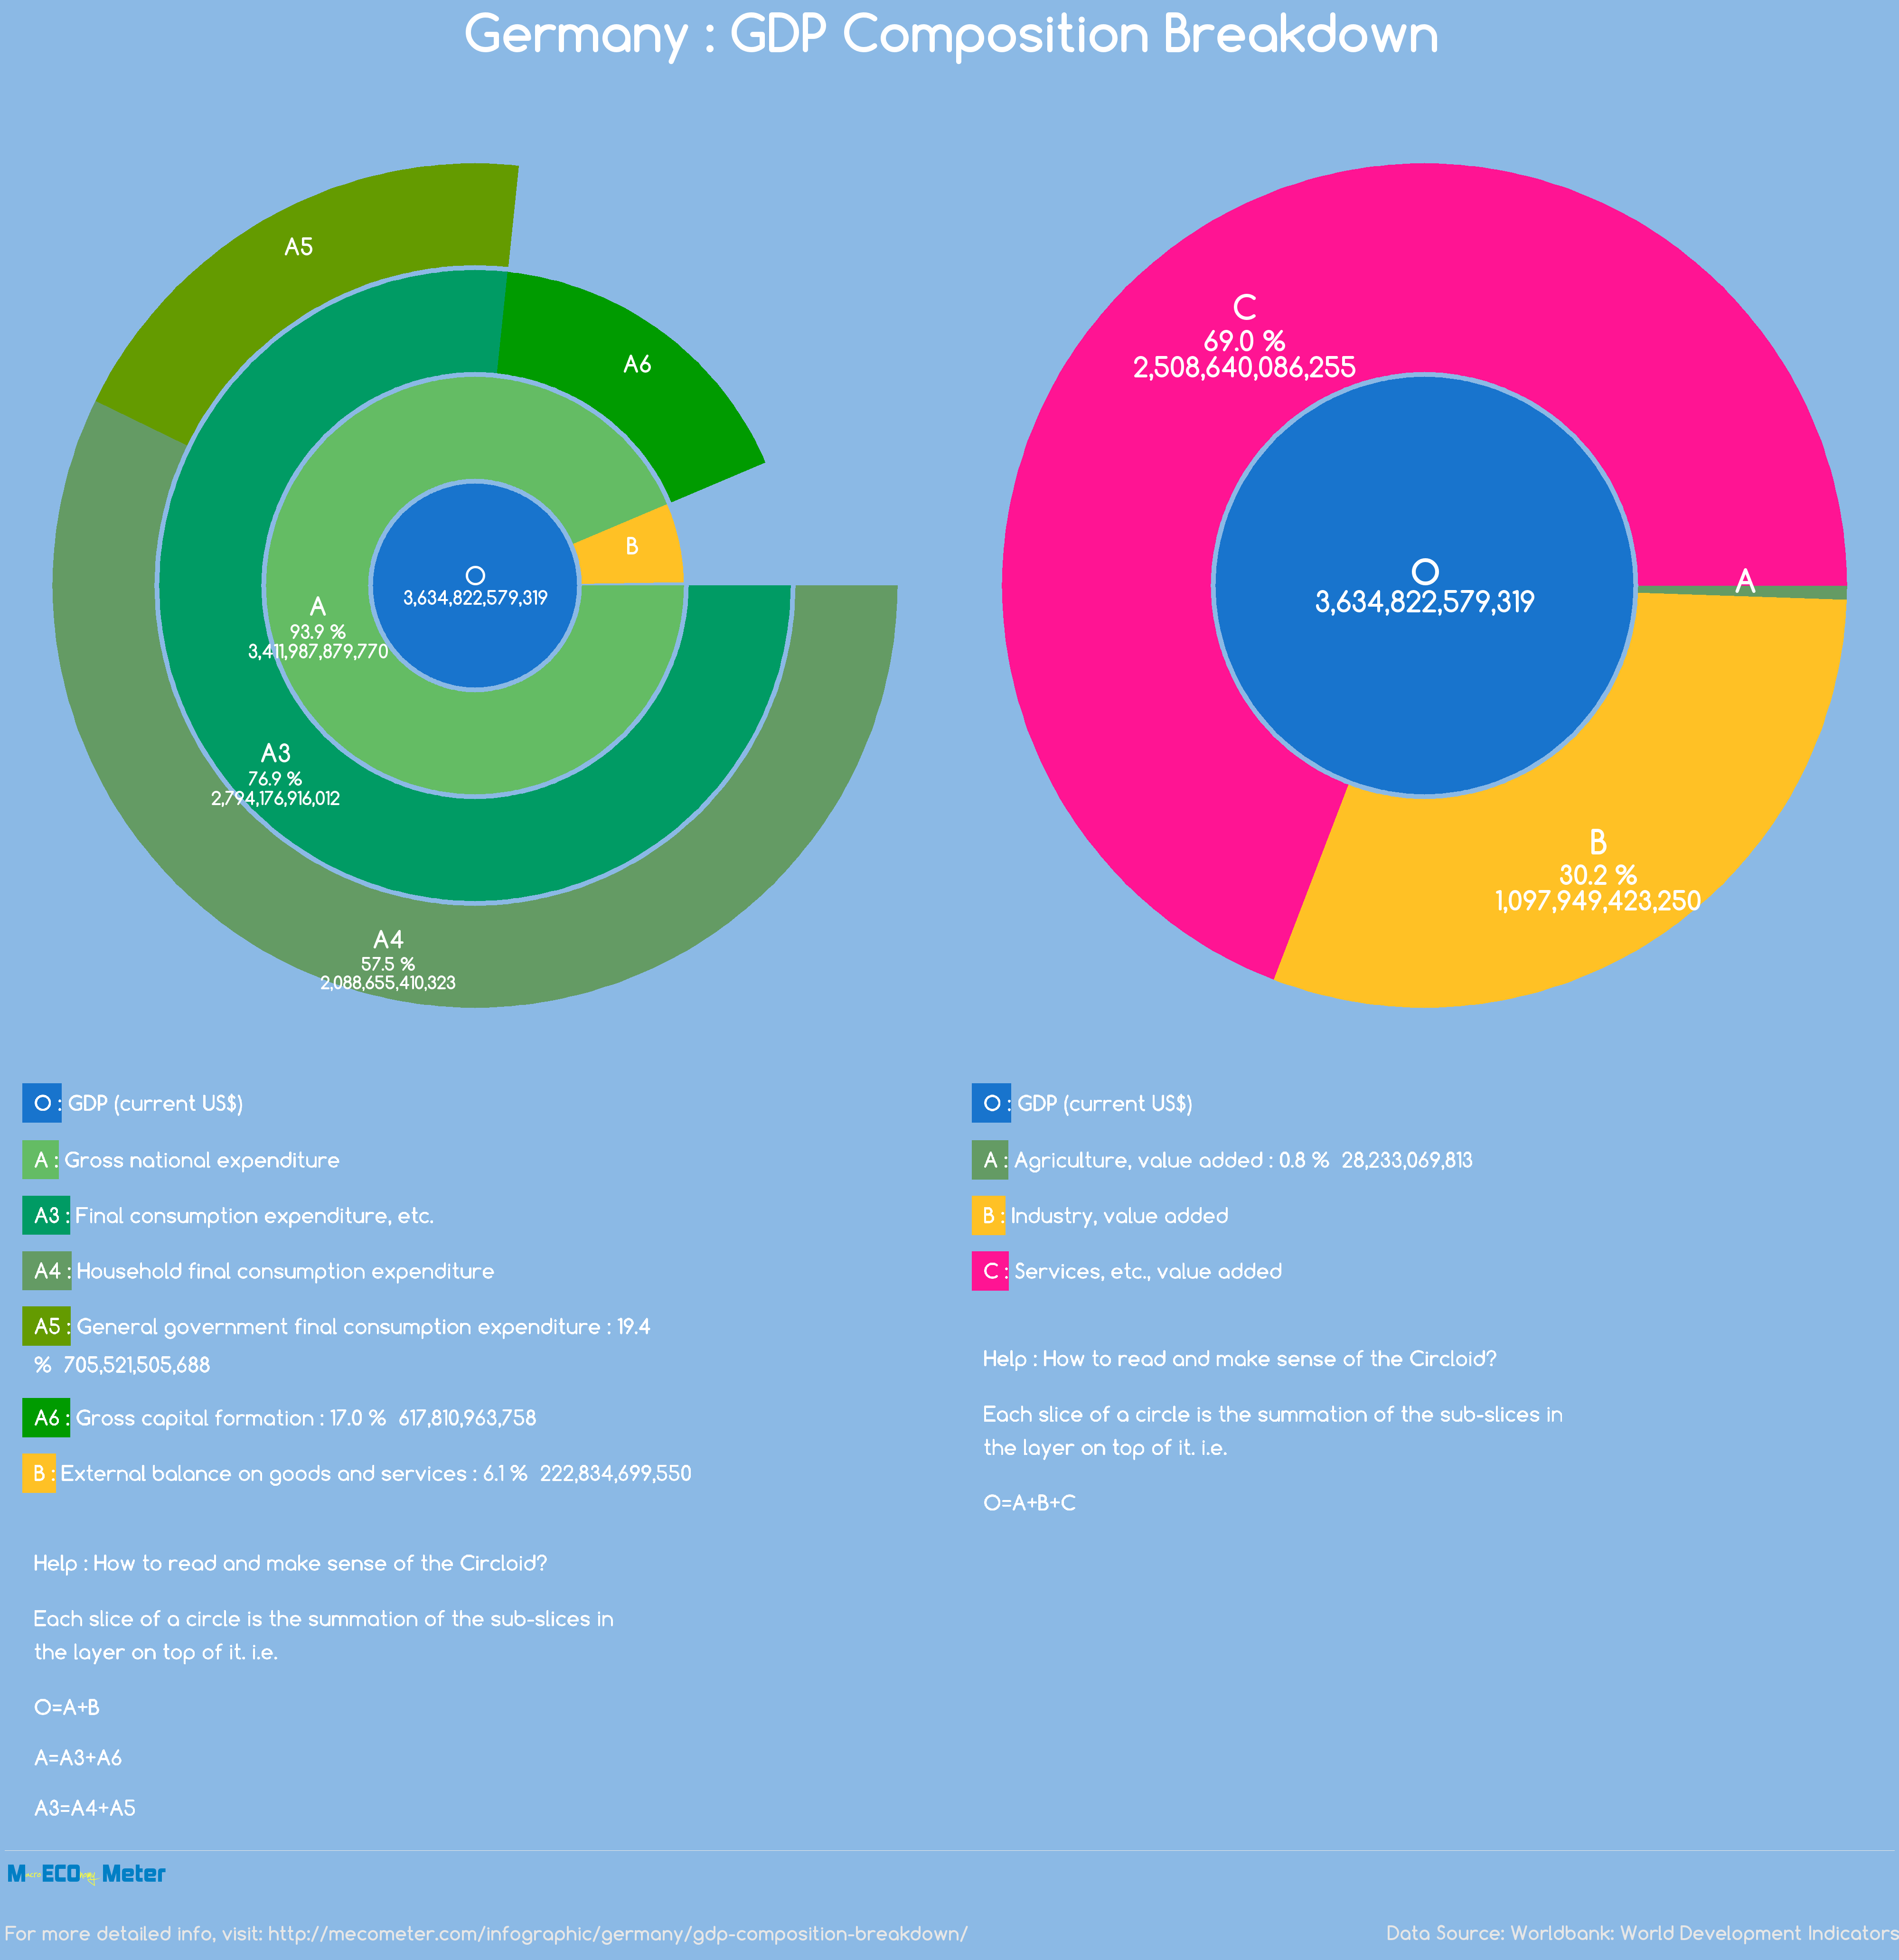 Germany : GDP Composition Breakdown